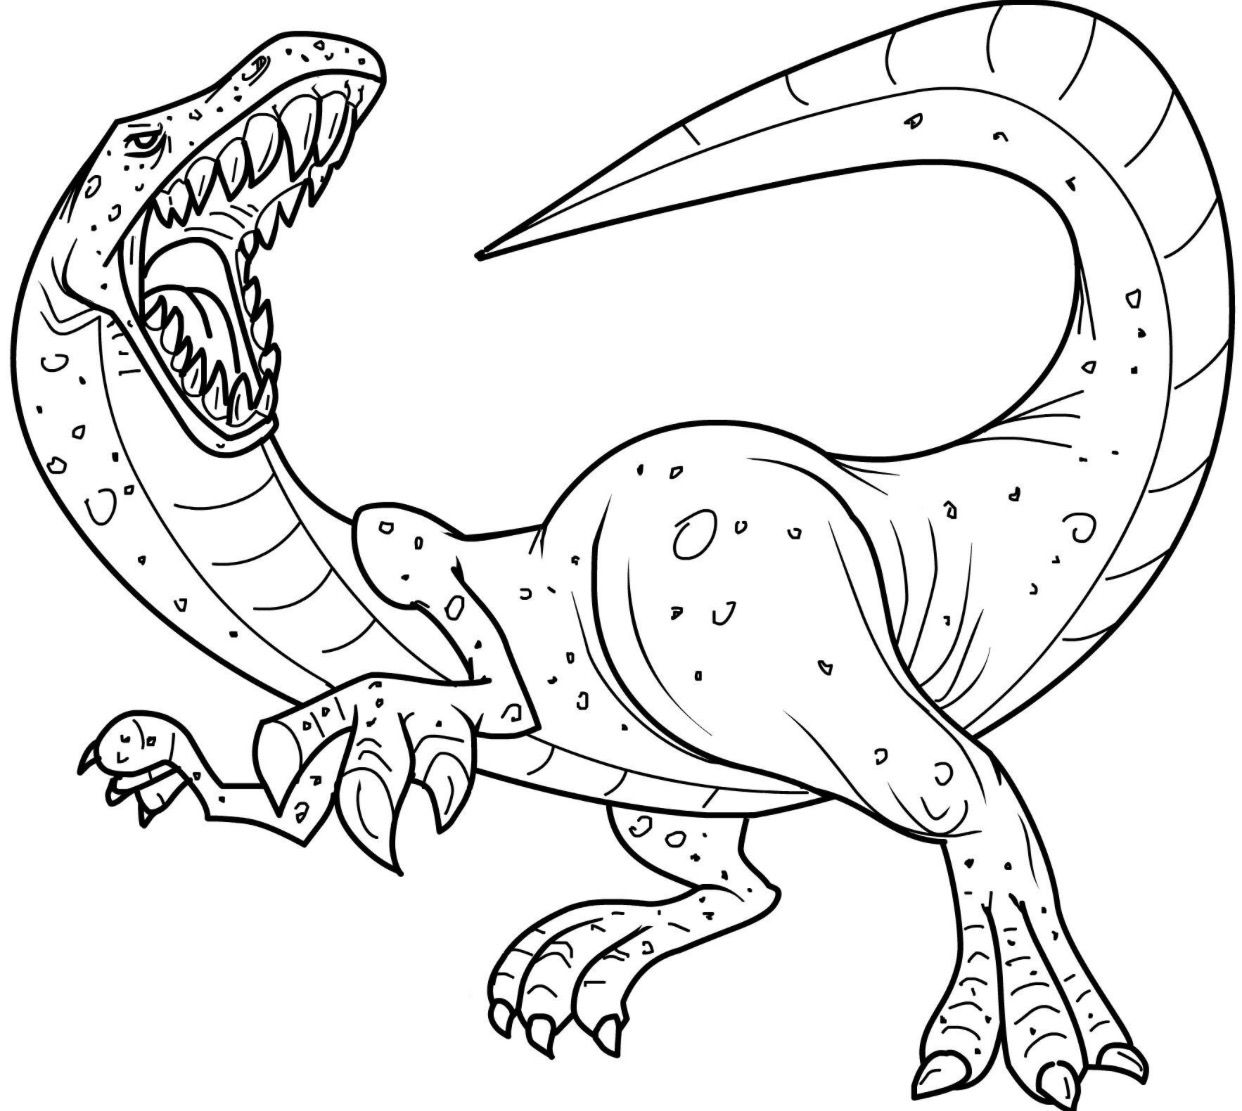 Pin By Osh Gawsh On Discipline N Empowerment Dinosaur Coloring Pages Animal Coloring Pages Dinosaur Coloring